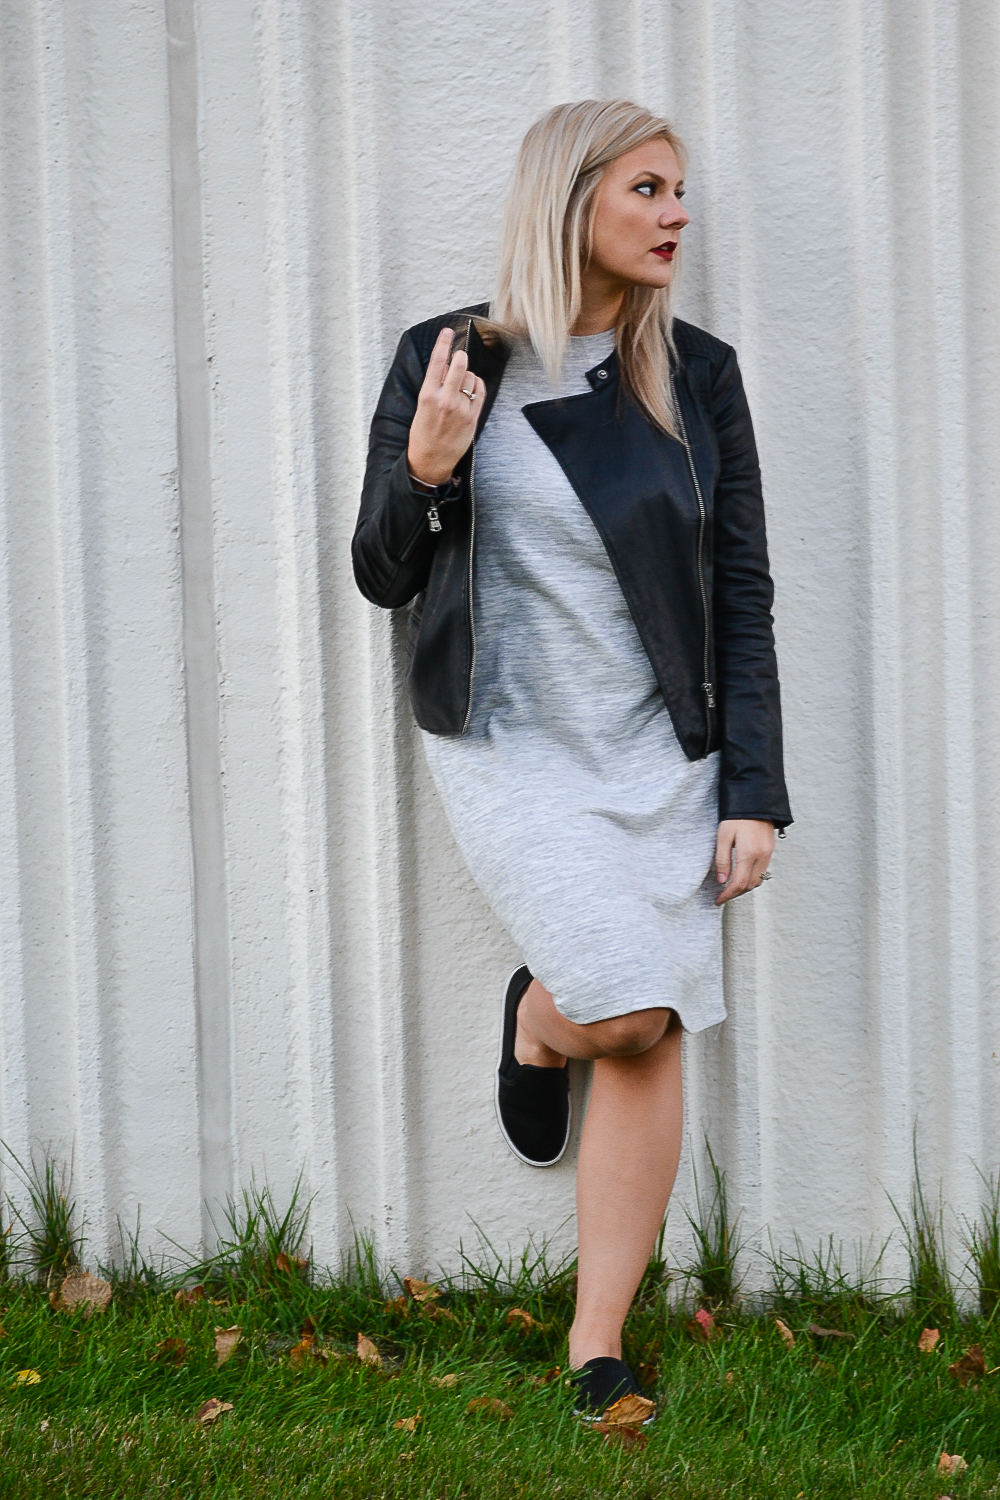 Fashion_Moto Jacket_Sweater Dress.jpg